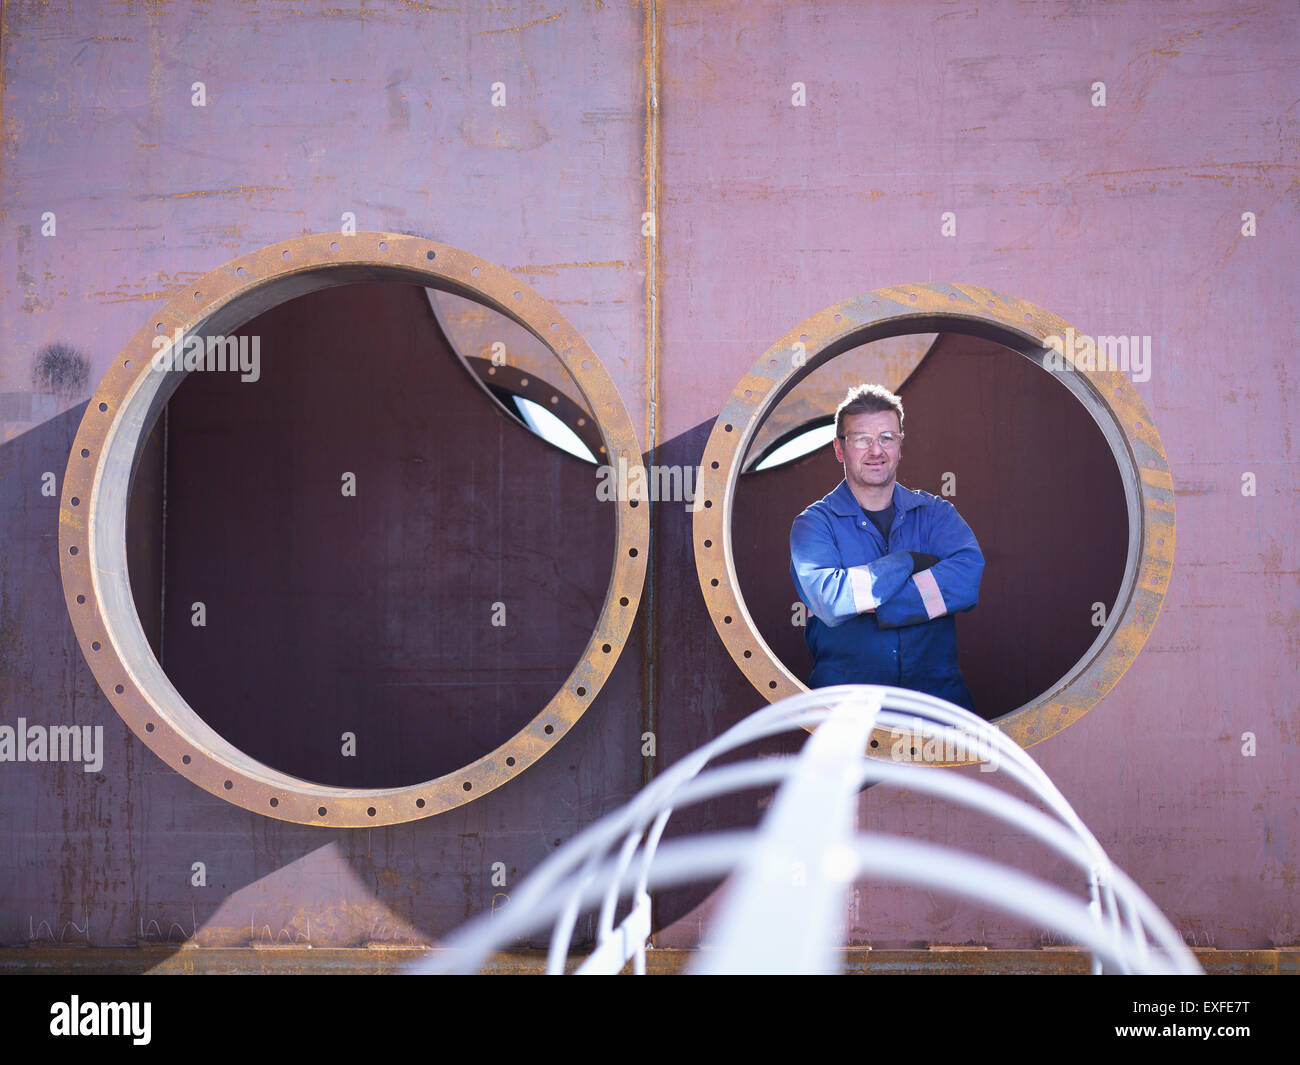 Portrait of engineer inside large steel superstructure in engineering factory - Stock Image